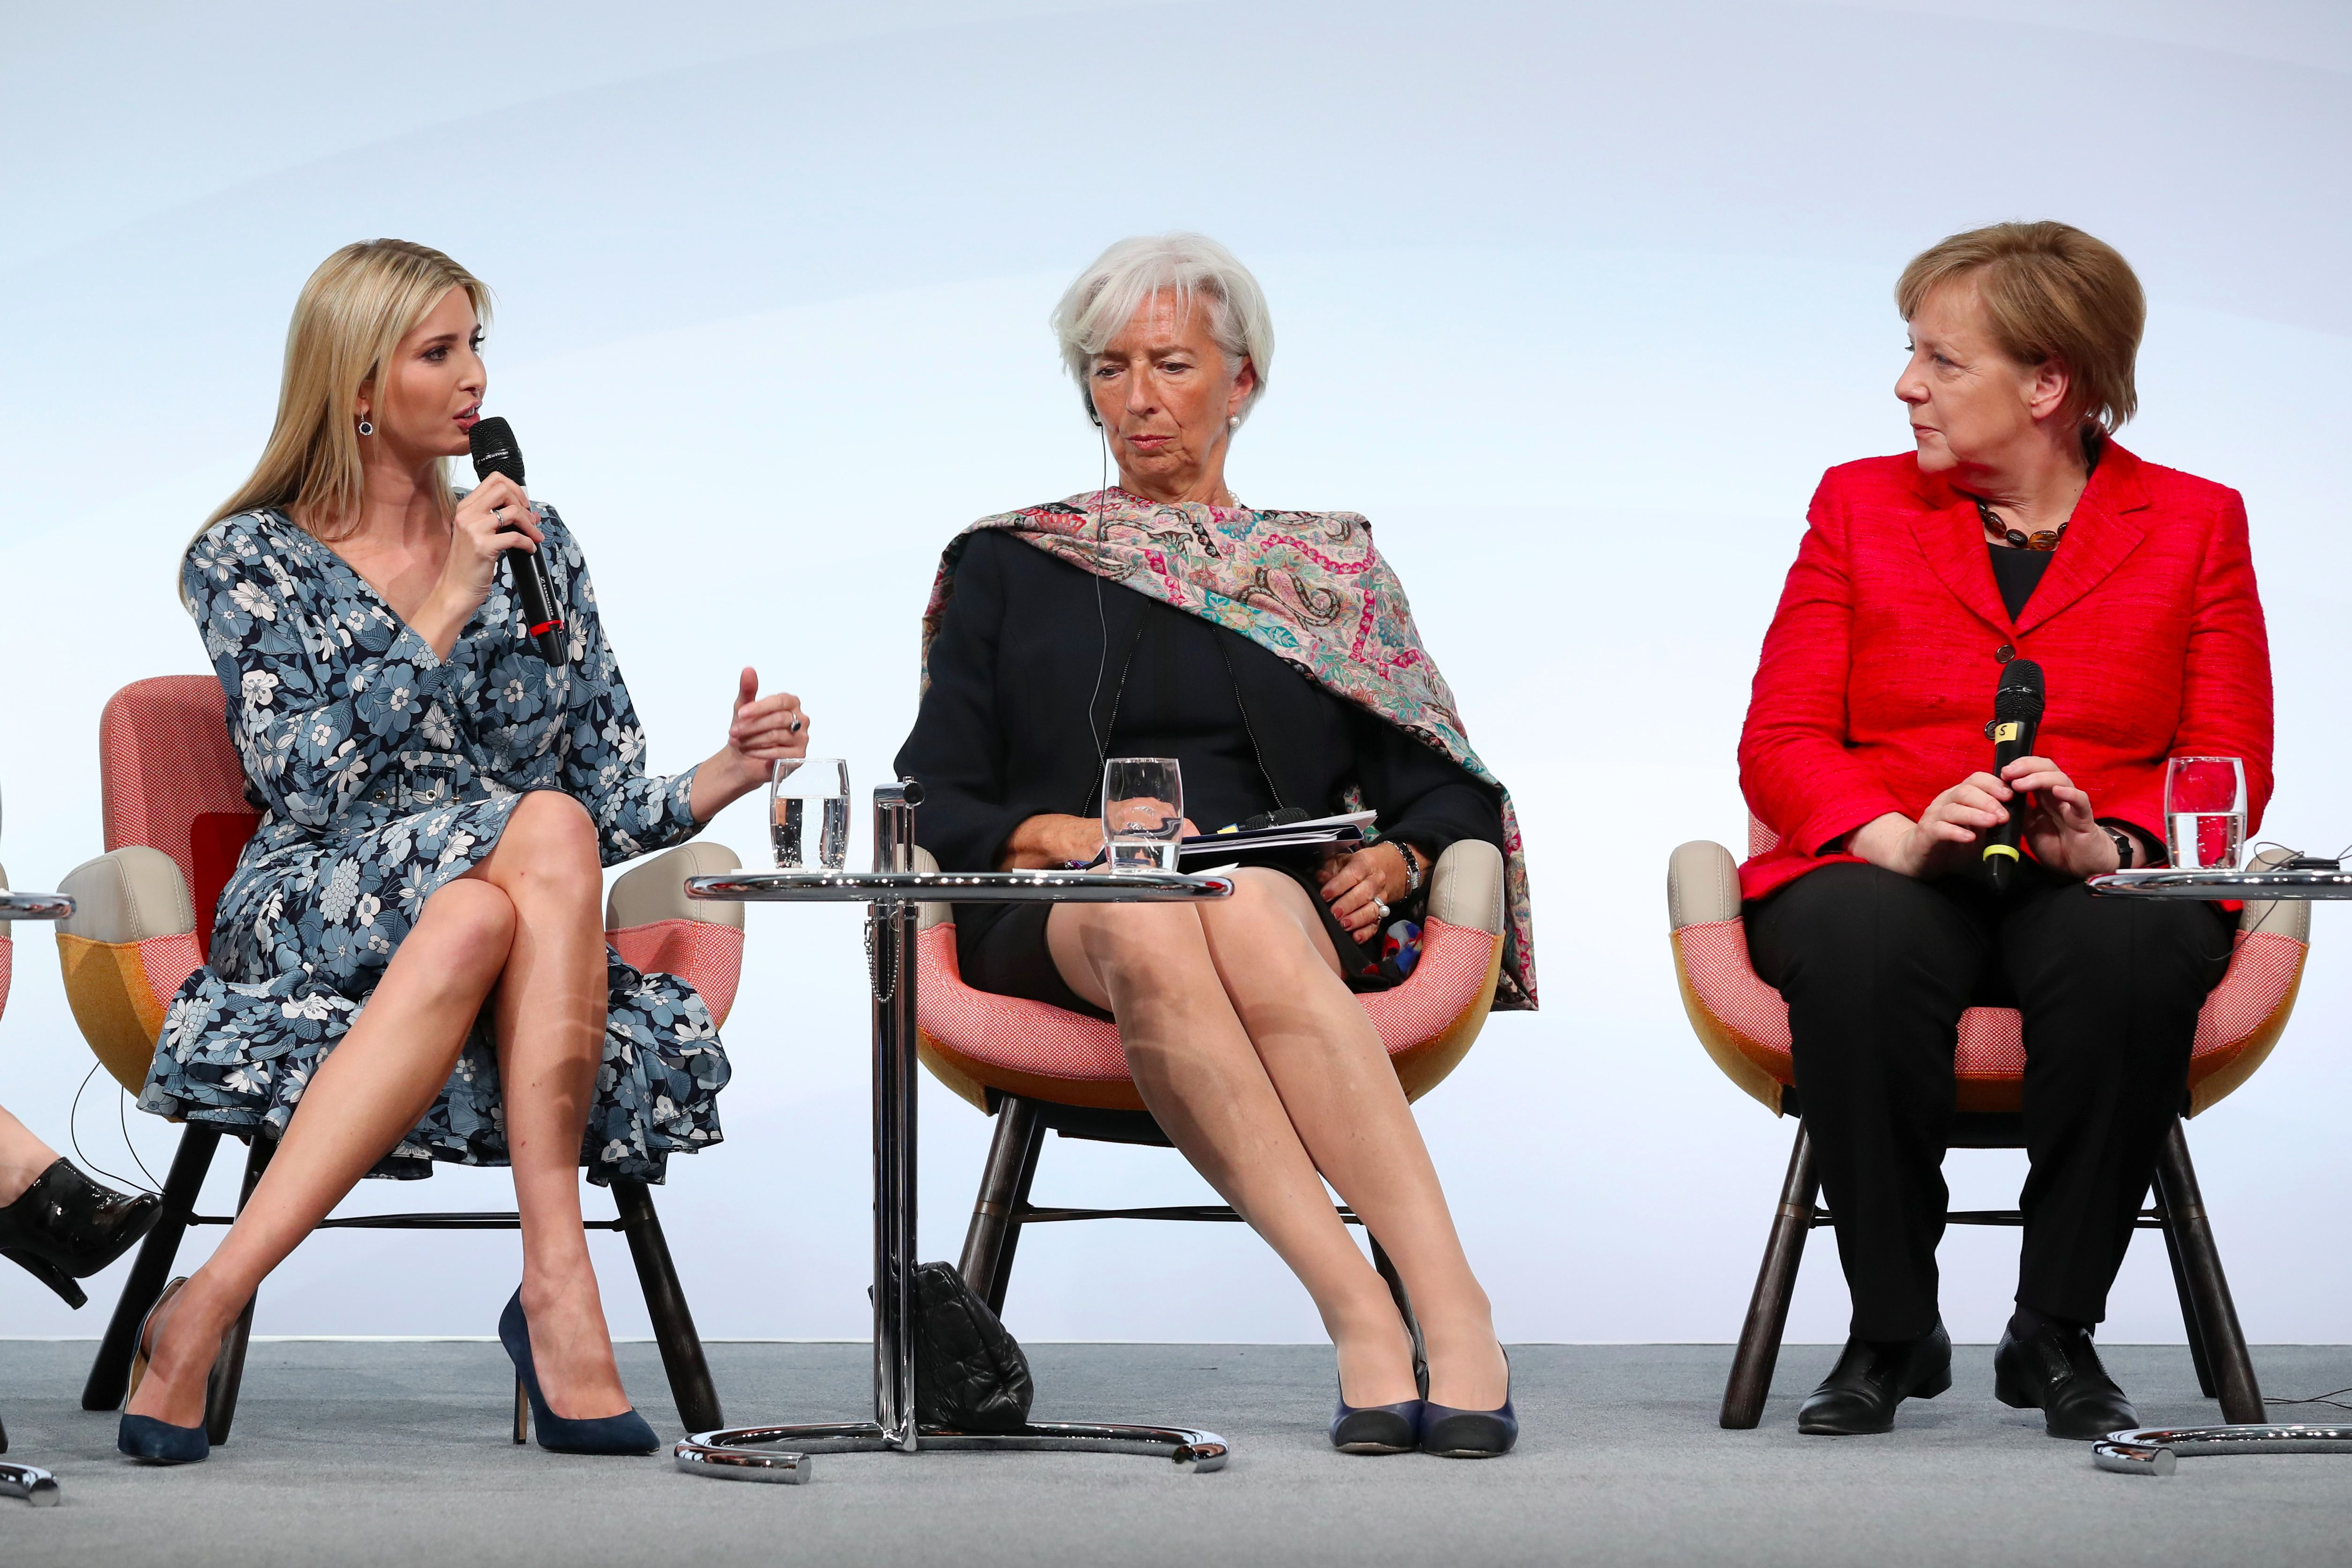 Ivanka Trump Called Out At W20 In Berlin – The Forward